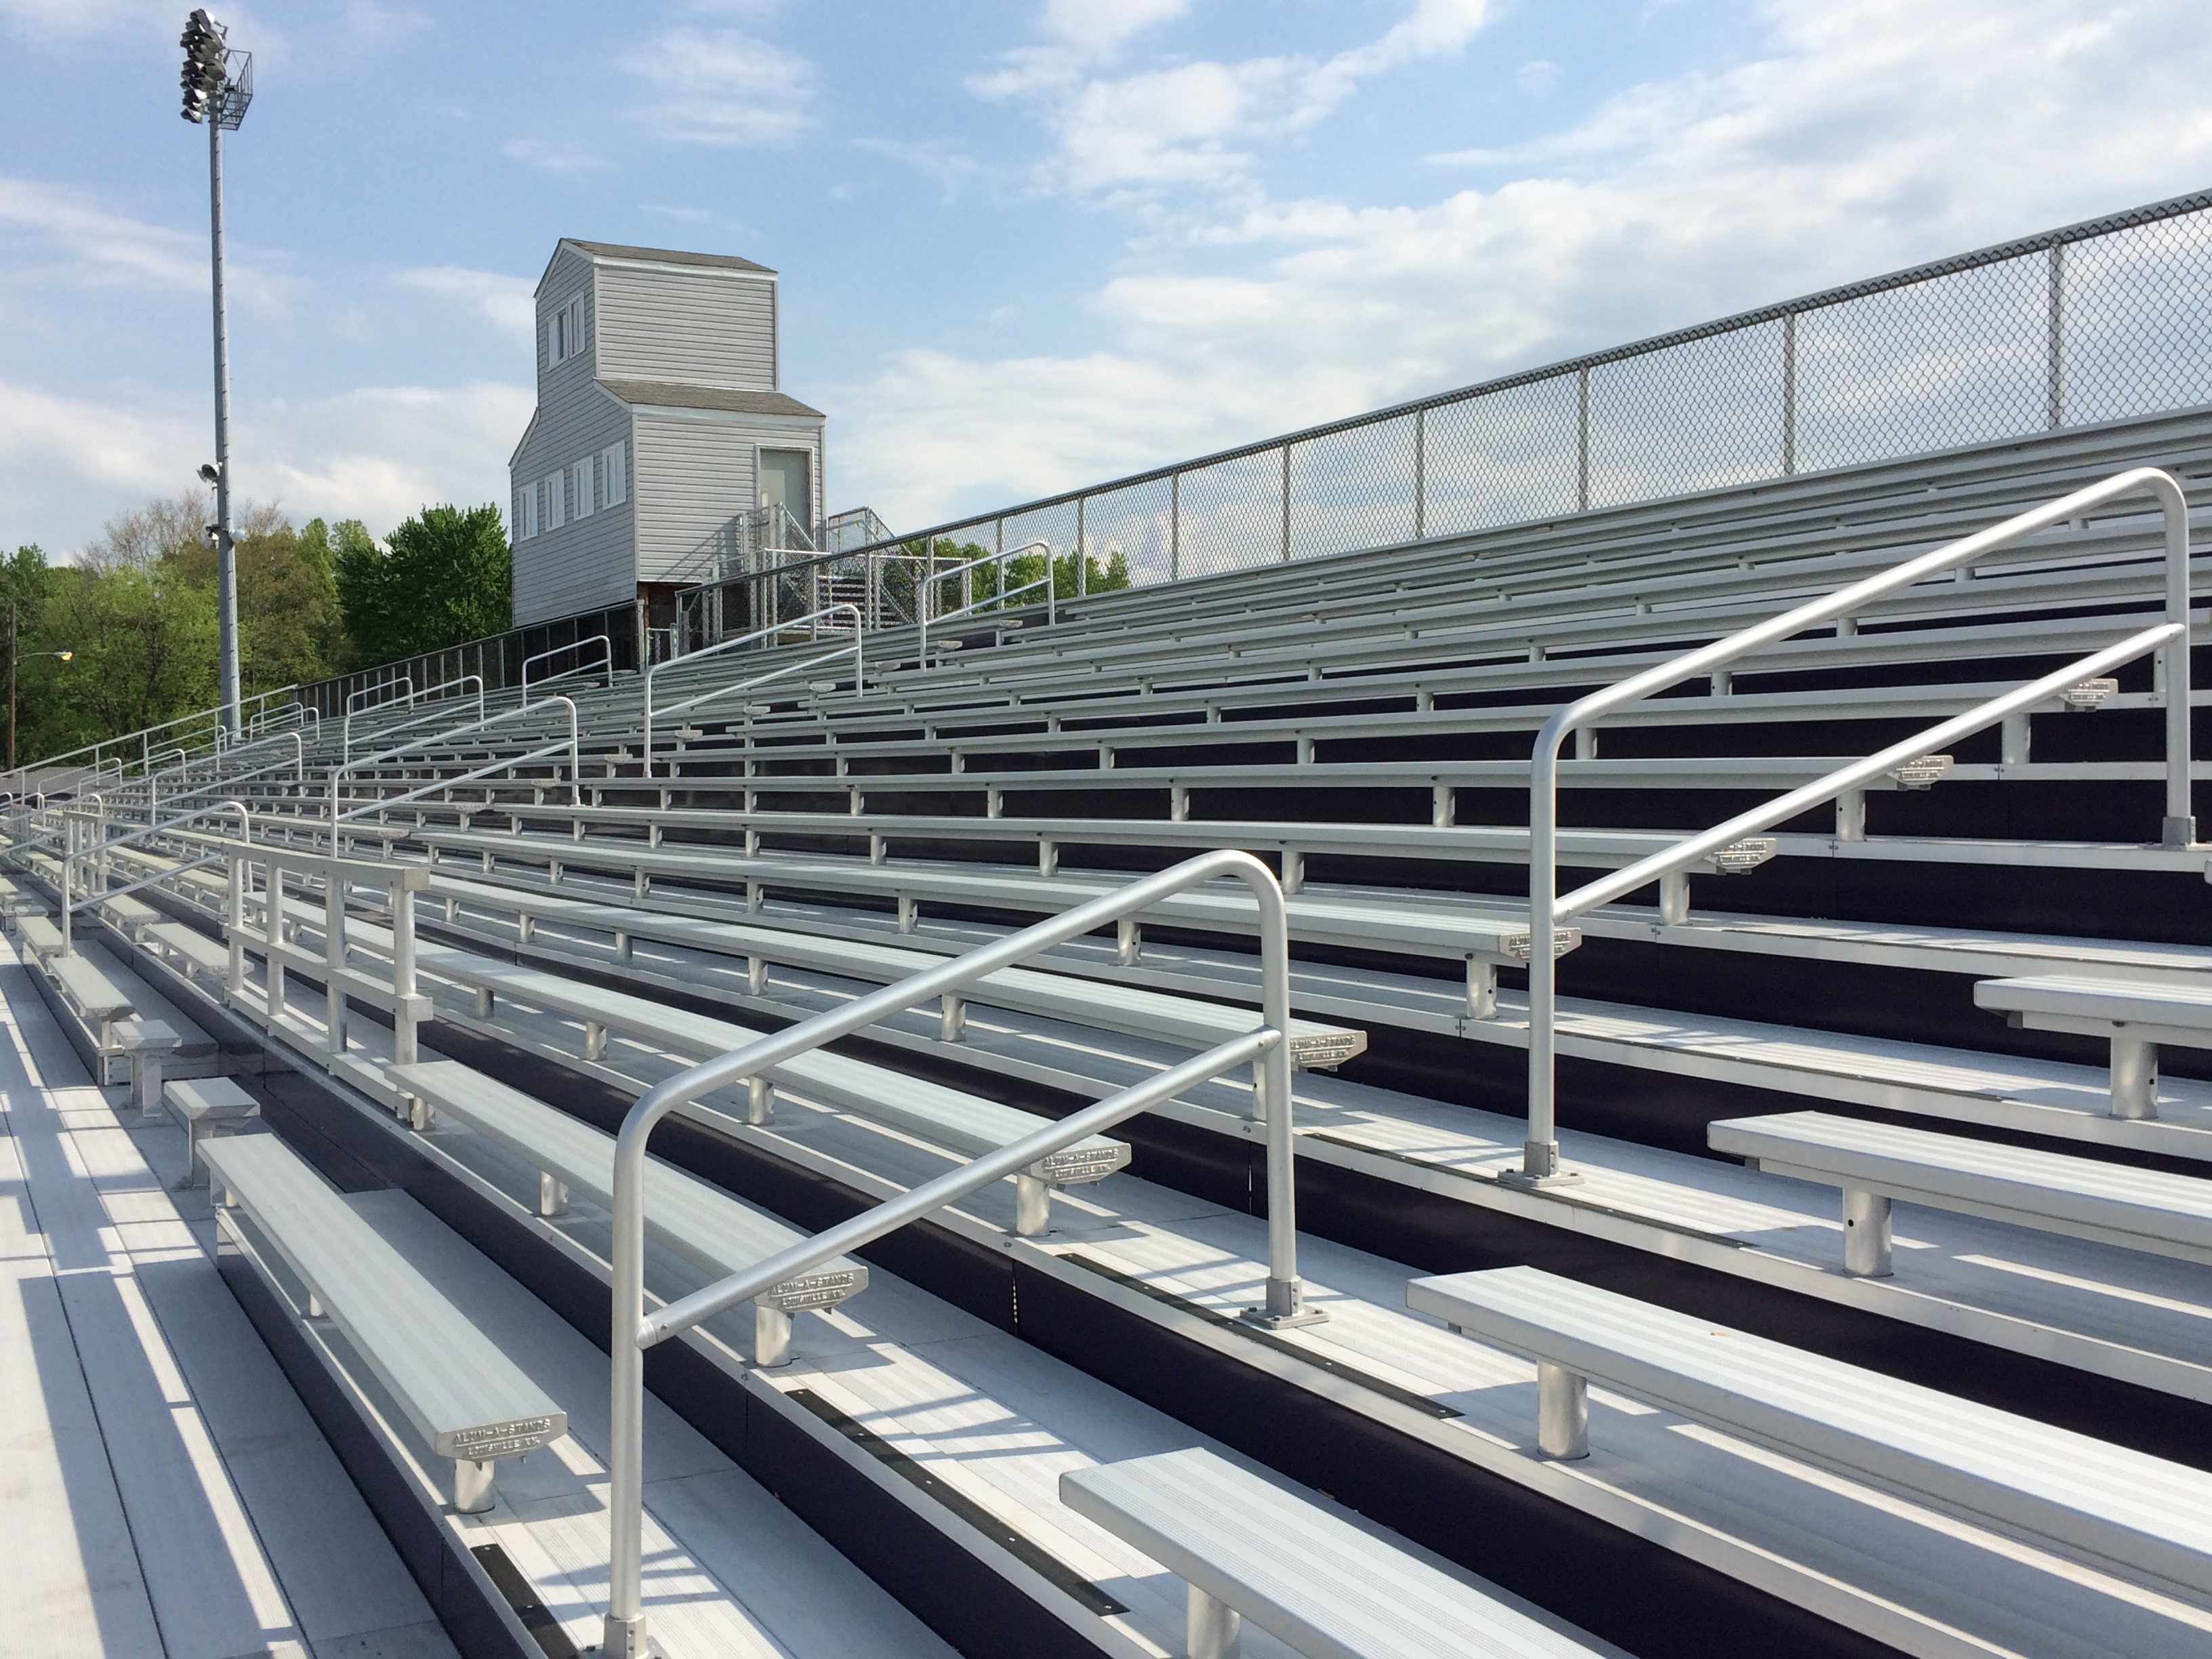 Southern_High_School_Football_Bleachers.jpg